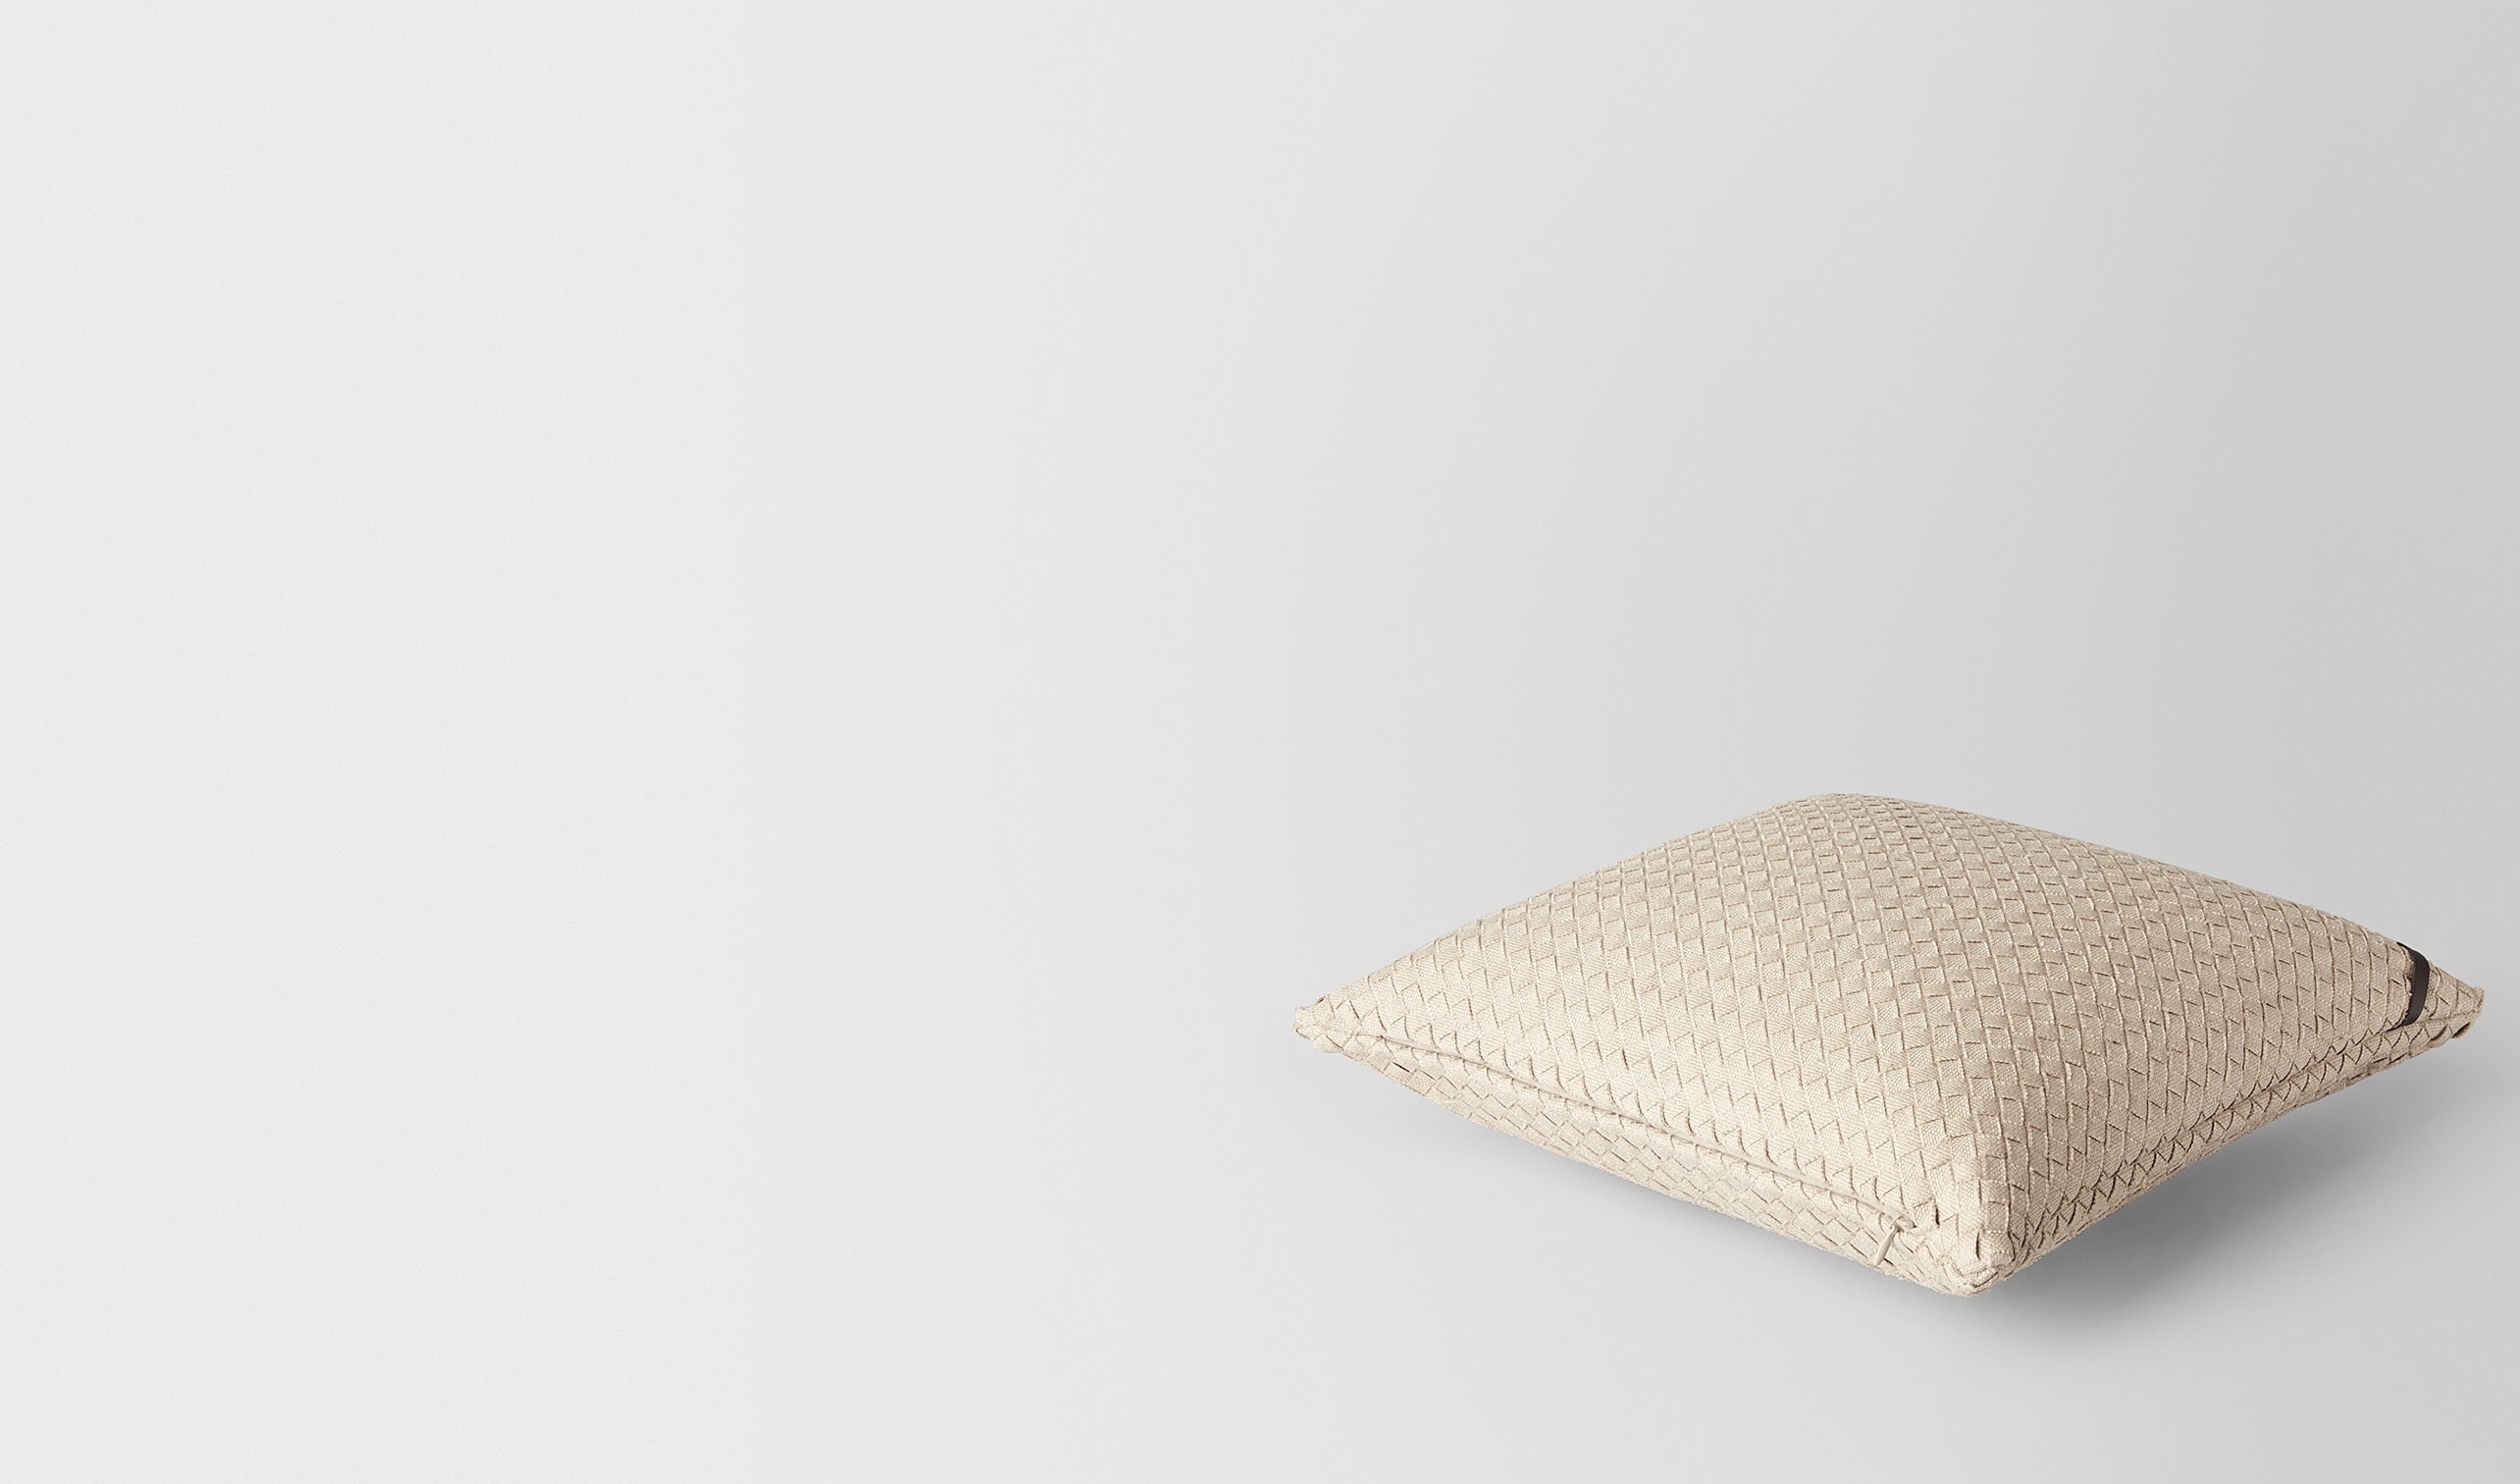 BOTTEGA VENETA Pillow and blanket E PILLOW IN PALLADIO INTRECCIATO NAPPA pl